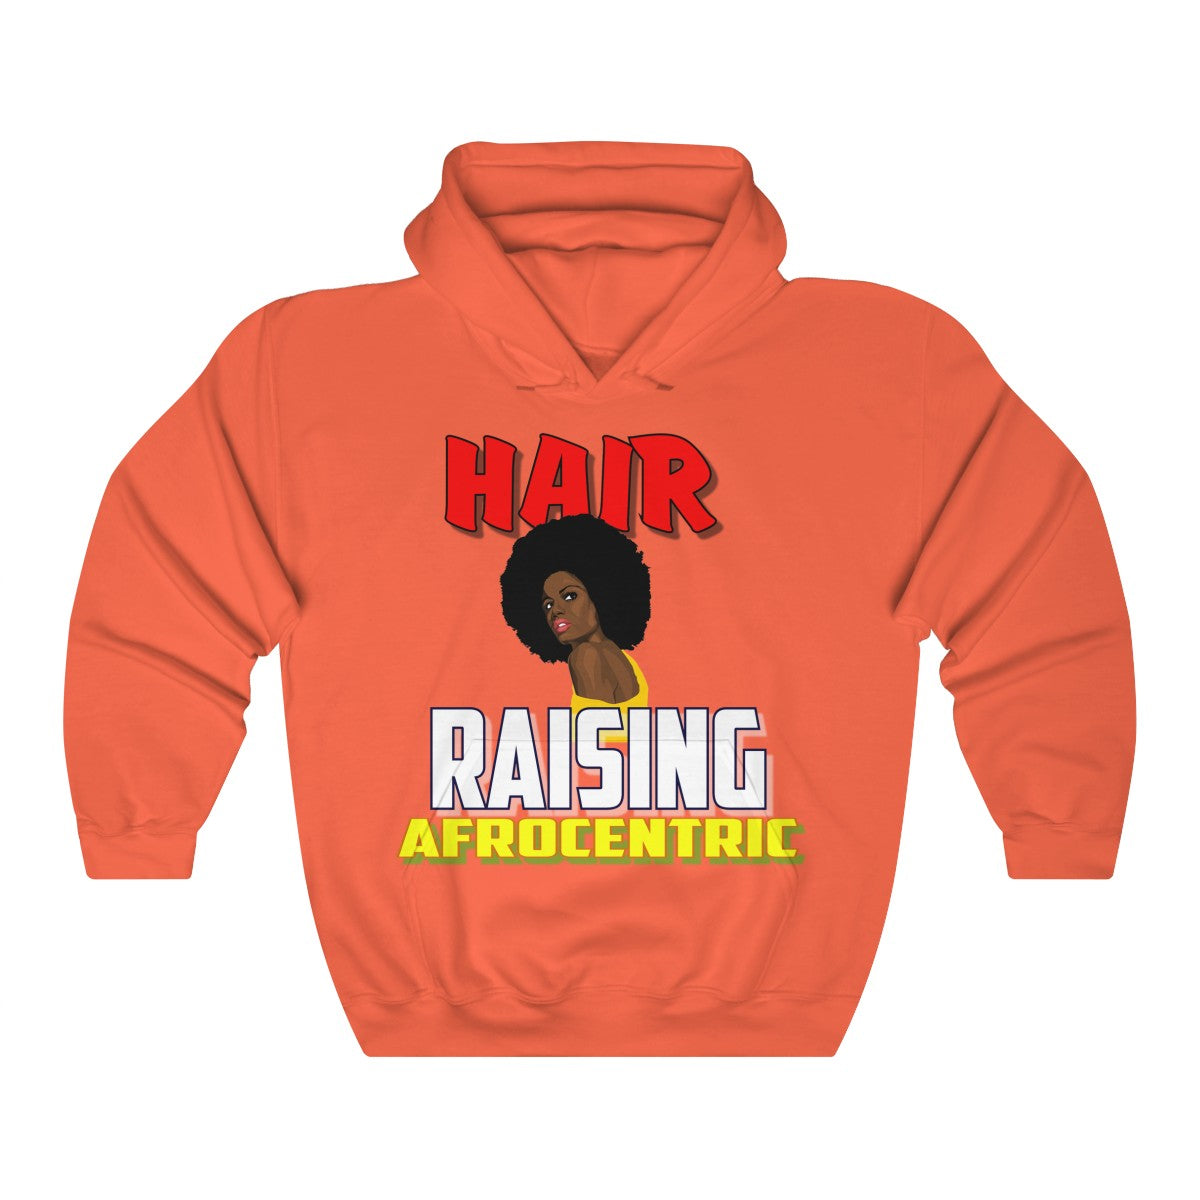 Unisex Heavy Blend™ Hooded Sweatshirt - Hair Raising Afrocentric